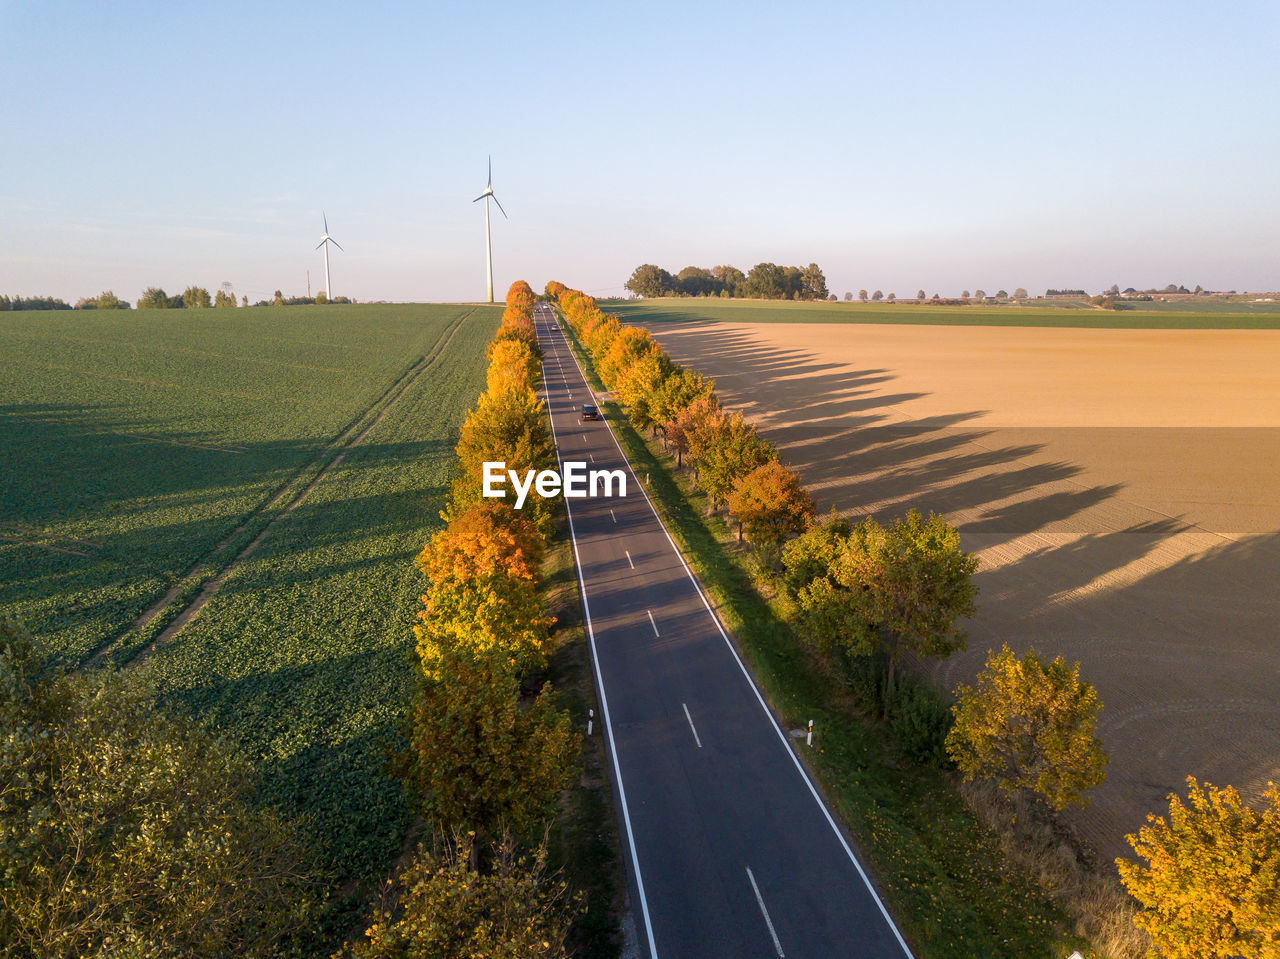 sky, environment, plant, transportation, landscape, road, nature, tree, field, the way forward, land, beauty in nature, day, direction, sign, scenics - nature, fuel and power generation, no people, marking, tranquil scene, diminishing perspective, outdoors, dividing line